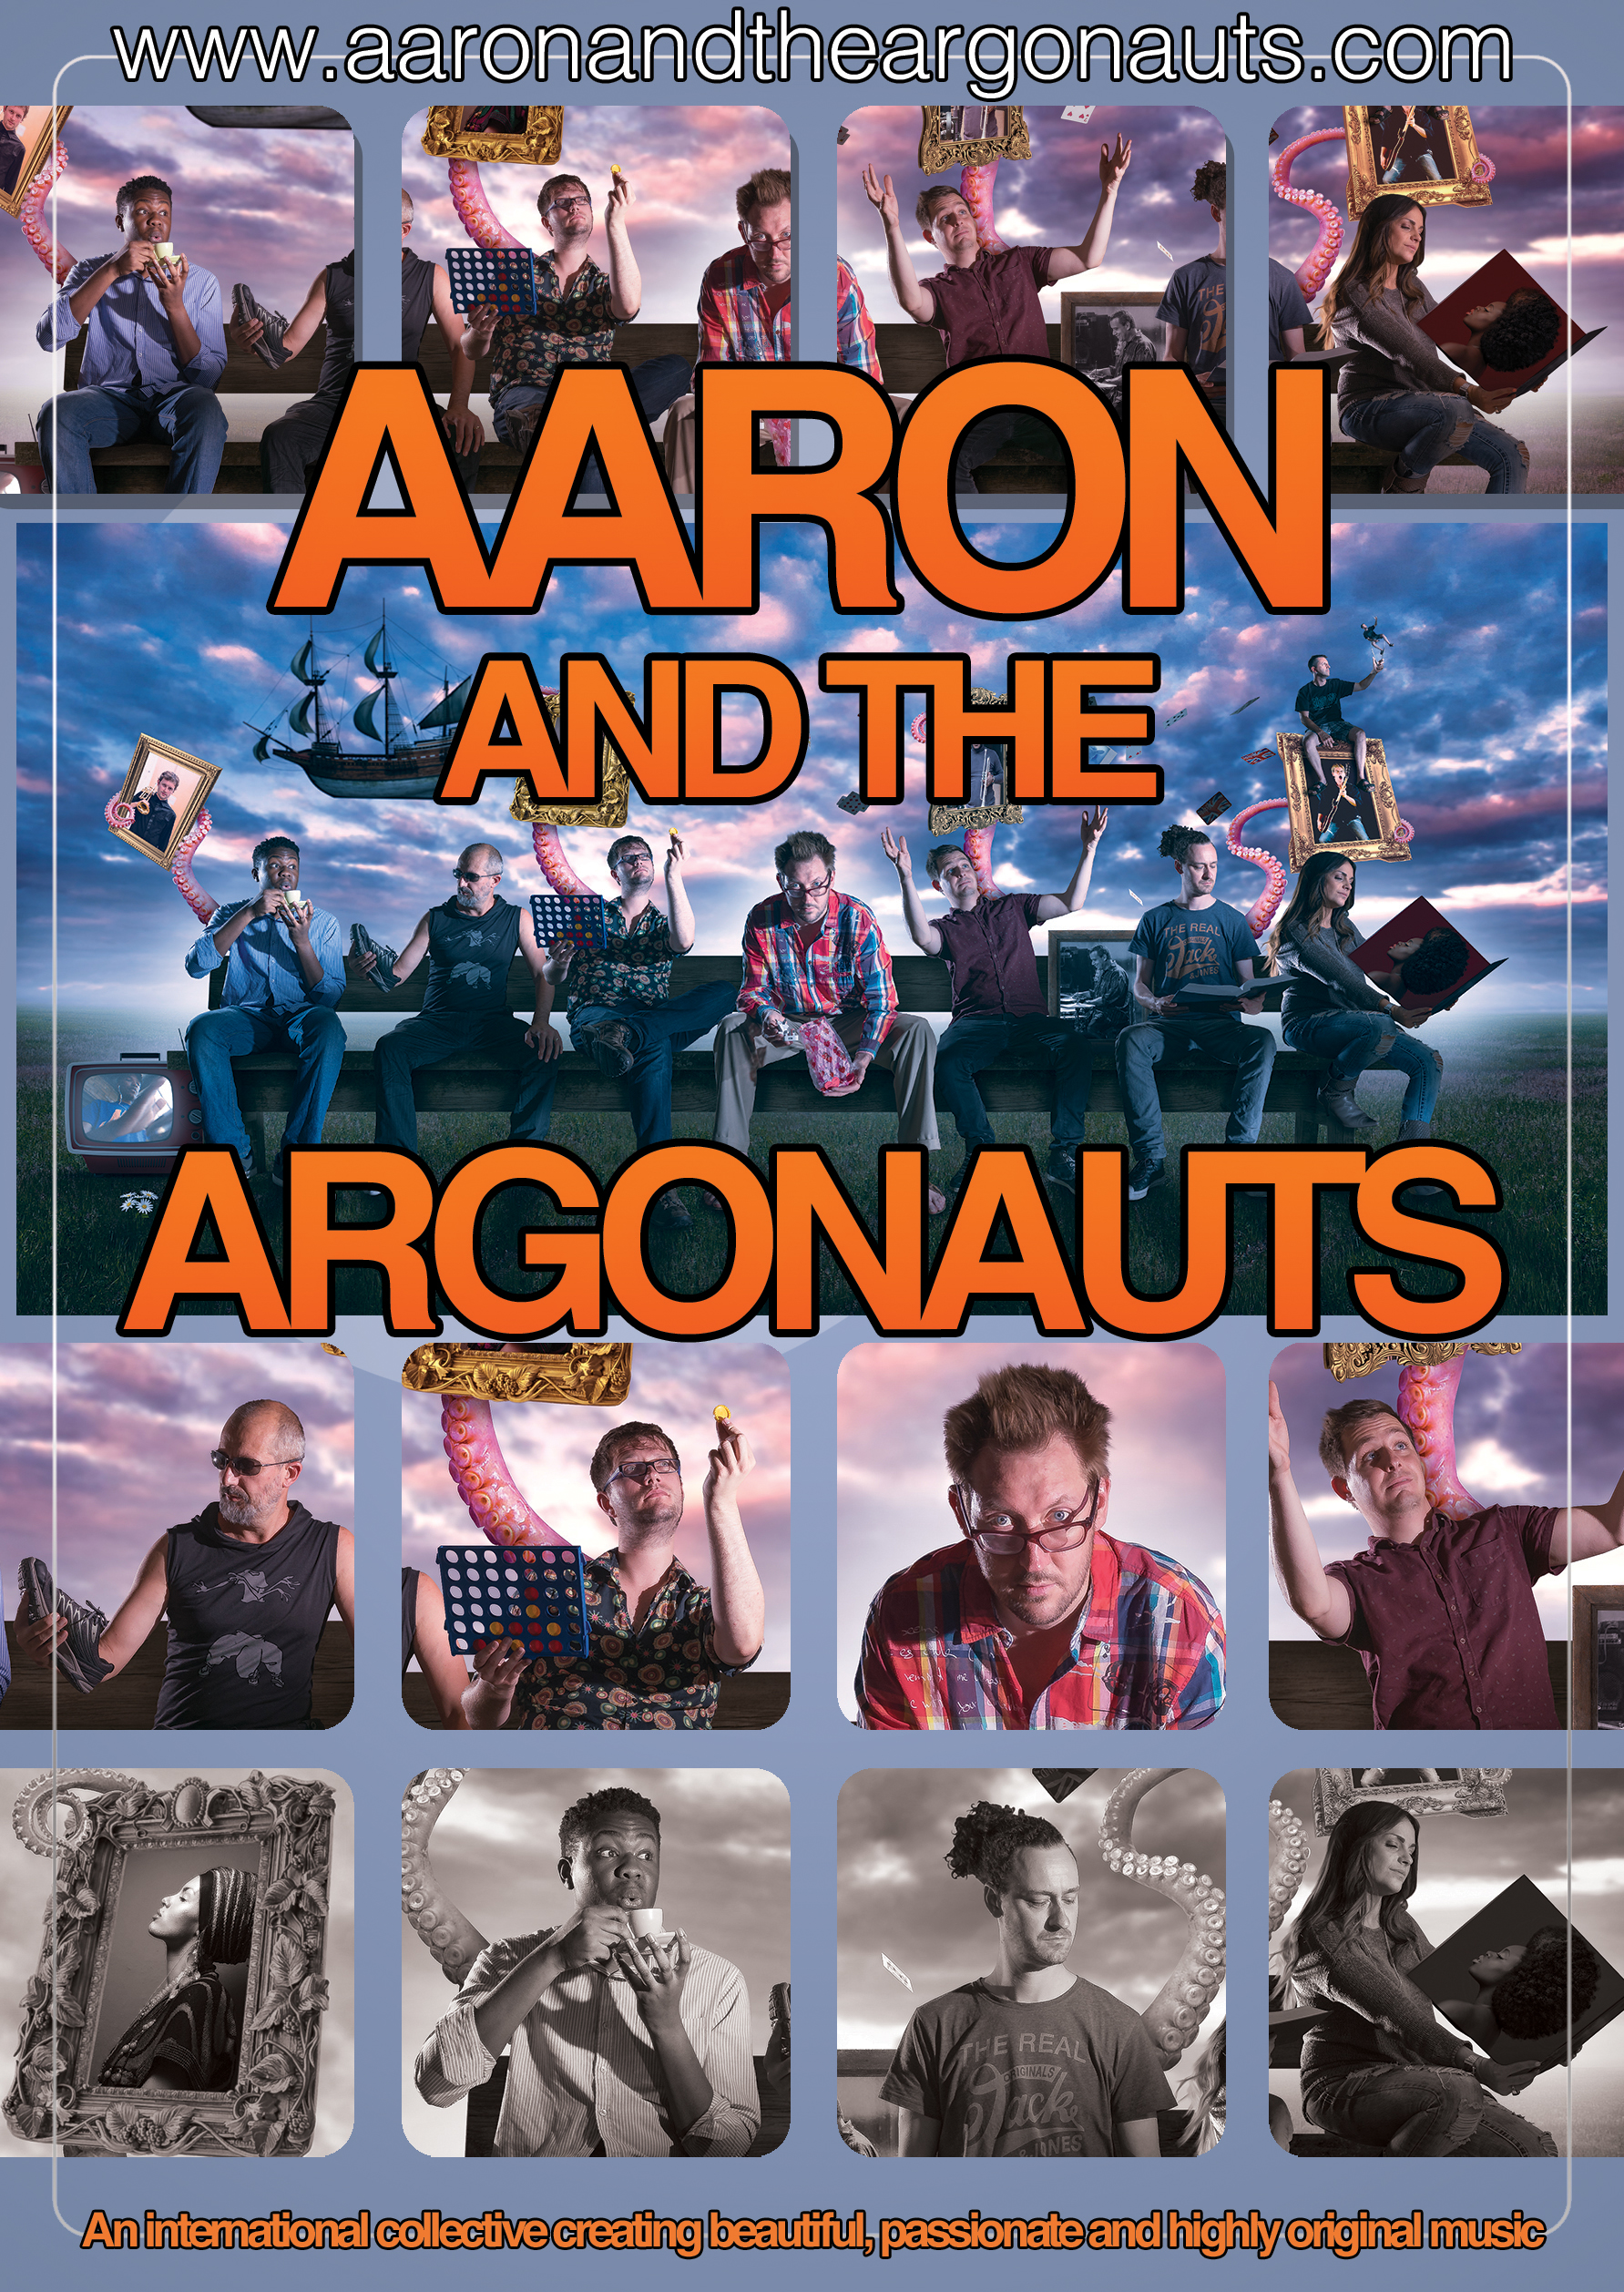 - Originally a garage band duo, Aaron and The Argonauts met at Covent Garden Opera House while performing in Carlos Acosta's Cubania. They grew into a multinational collective of master musicians and singers, led by former Amy Winehouse sax player Aaron Liddard. Aaron has also performed with the likes of Prince, Maceo Parker and the Boomtown Rats with Bob Geldof.The Argonauts fuse classic jazz funk sensibilities with twists of electronica and Cuban, Brazilian and Jamaican traditions. The six piece band are an international collective of musicians from the U.K., Cuba, Brazil, Switzerland, Italy & Germany. Together they create beautiful, passionate and highly original music, with ear-worm melodies and dance friendly rhythms. Expect Jazz, Bossa Nova, Funk, Alt Rock, Gospel and Drum 'n' Bass. Quality Nourishment for Your Mind Soul and Spirit!Along with Aaron, the band comprises Giulia Joni Marelli (vocals), Jimmy Norton (drums), Eric Young (percussion), Filipe Monteiro (guitar) and Paul Michael (bass and keyboards). The band are very often joined by special guests including Cuban violinist Omar Puente (Courtney Pine), Yelfris Valdés on trumpet (Buena Vista Social Club), Tom White on trombone (Kylie Minogue), also on trumpet Sid Gauld (Incognito), guitarist Dave Ital (Chaka Khan) and guest vocalists Miss Baby Sol and Decosta Boyce, both of who are artists in their own right and have performed alongside artists such as Paloma Faith, Redlight, Rebecca Ferguson, Florence and The Machine and The Noisettes.